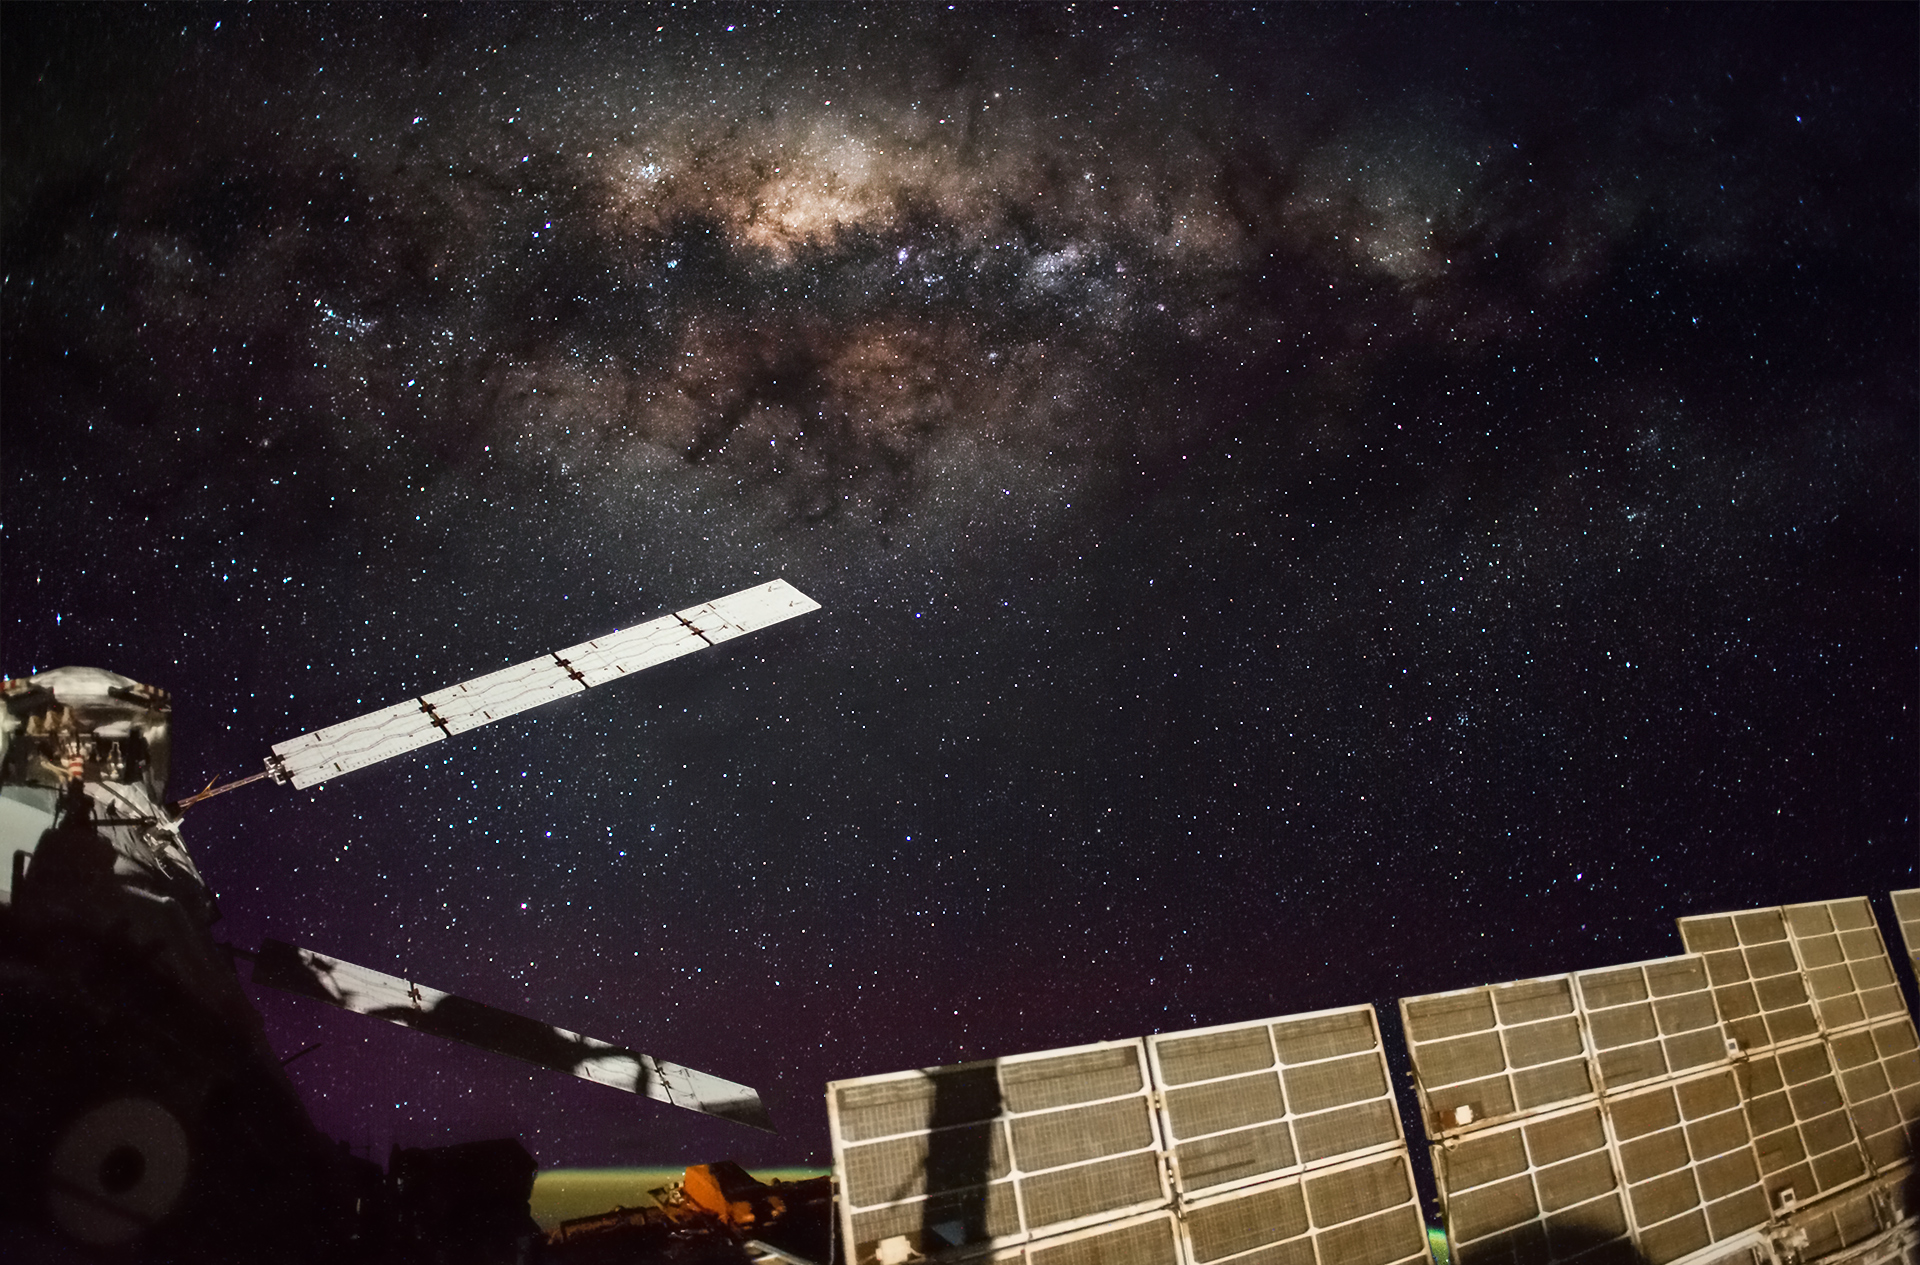 A Beautiful Time-Lapse Video of the Milky Way Galaxy From the International Space Station